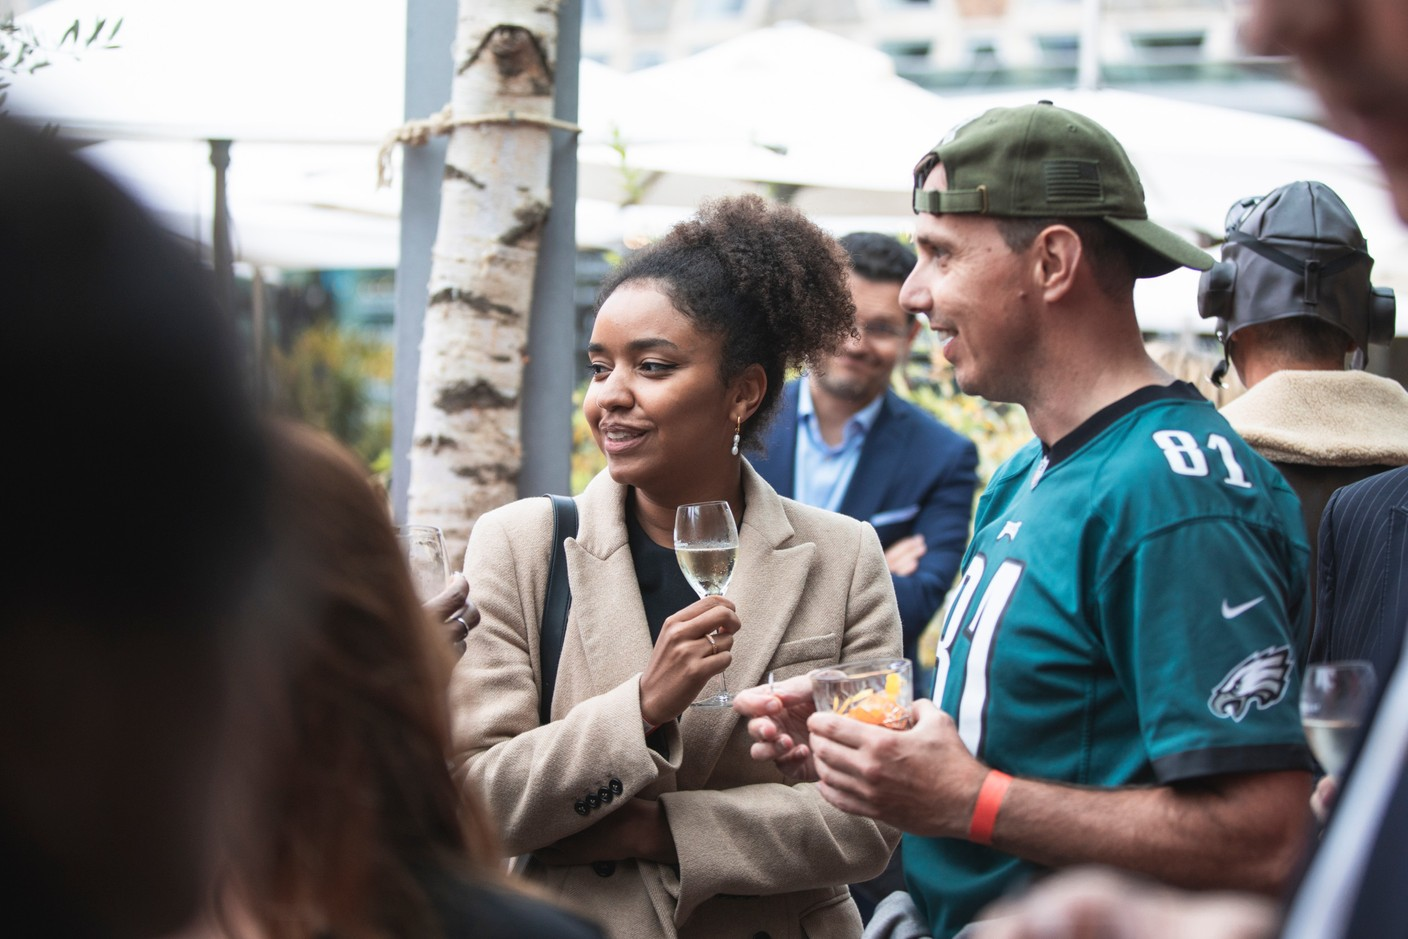 Lara Dieudonné of the British embassy and Yanniss Levron of Change Digital are pictured at Delano's 10th anniversary party, 13 July 2021. Simon Verjus/Maison Moderne